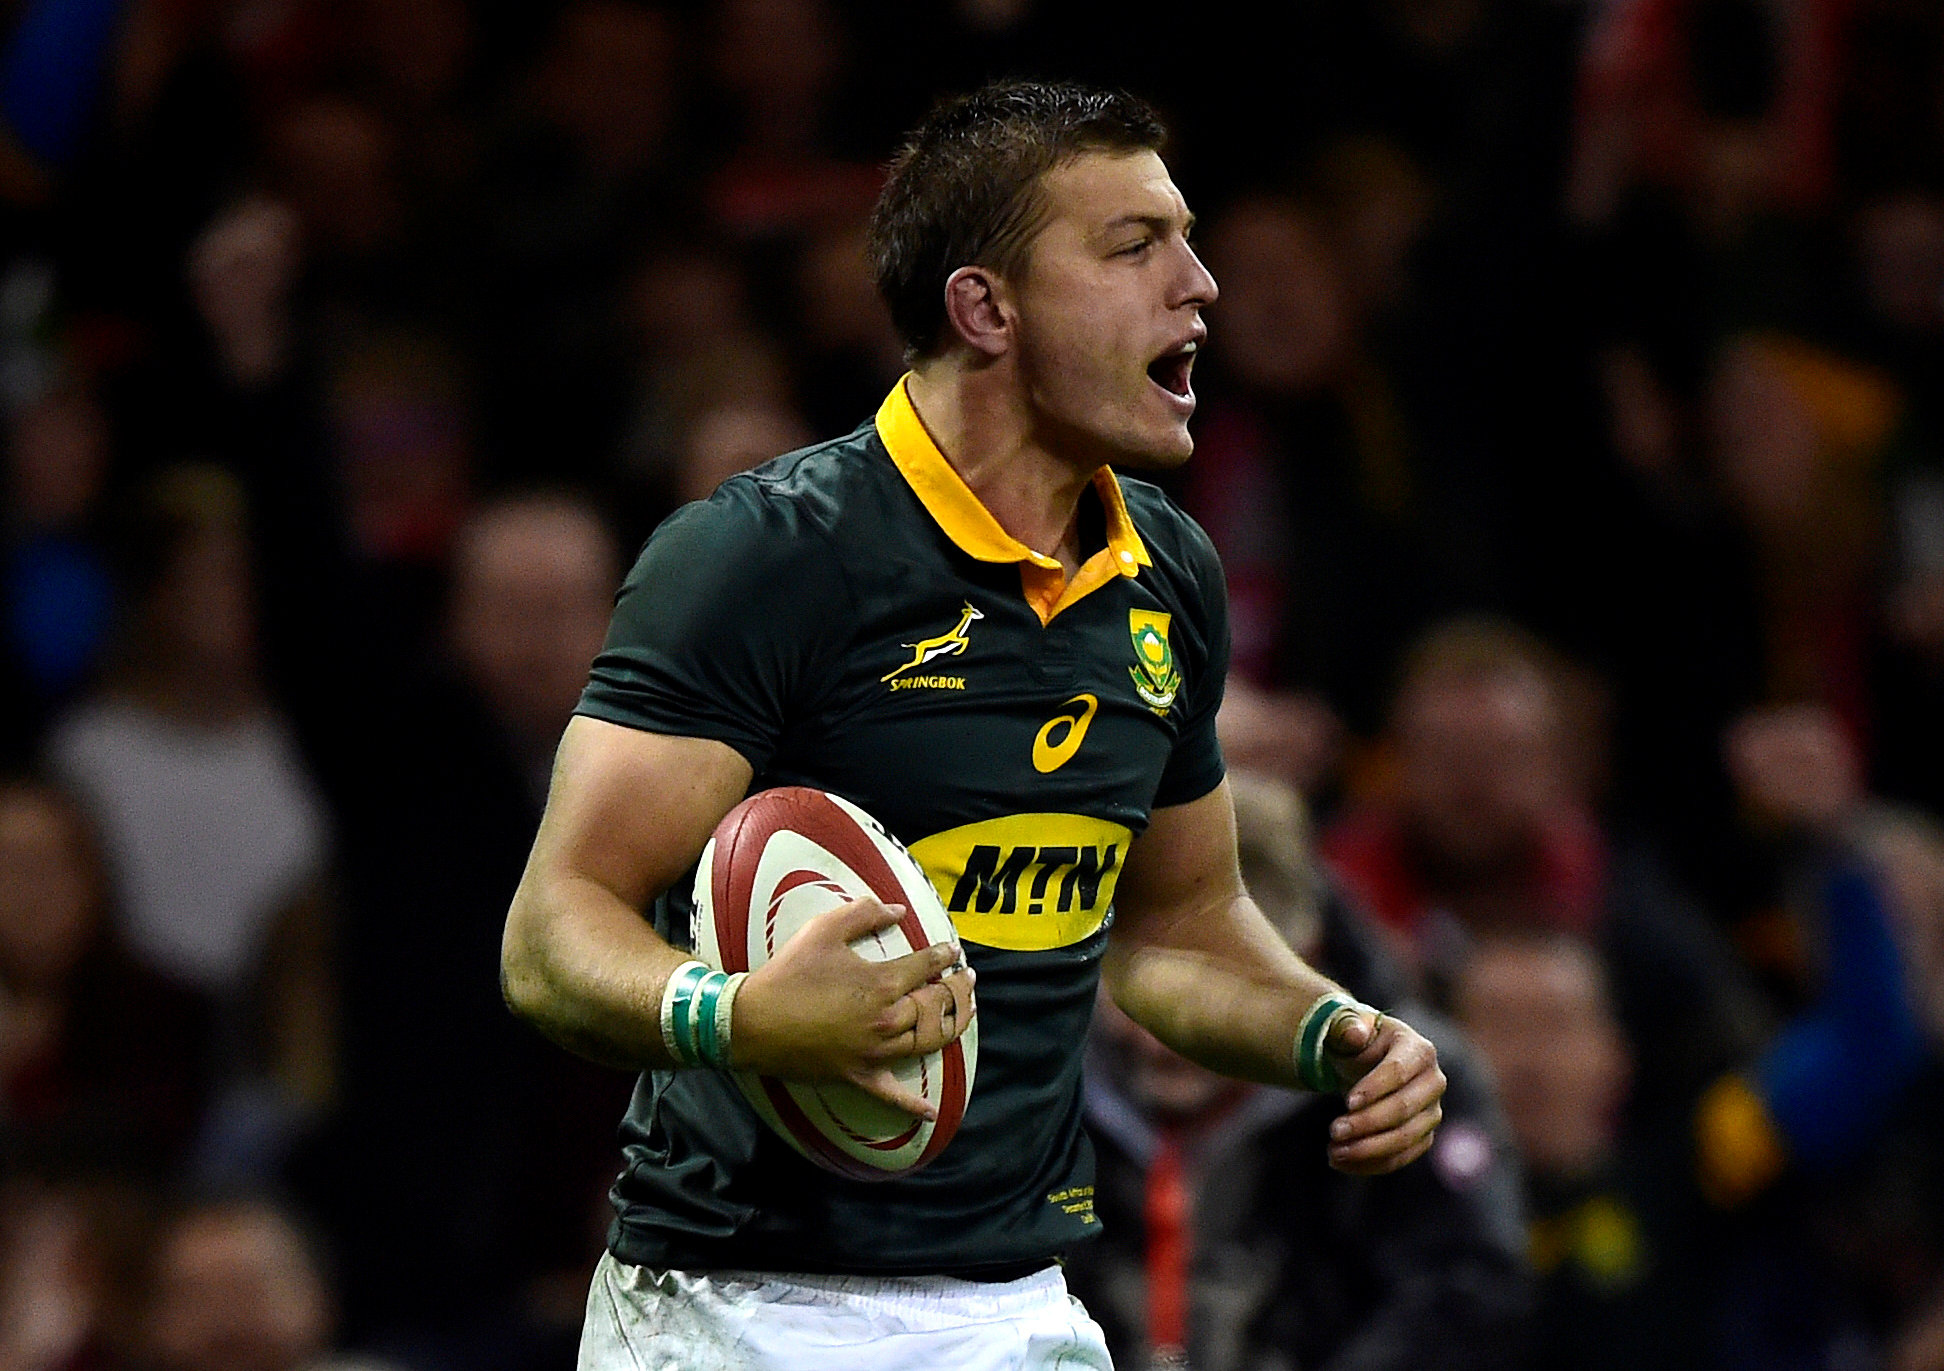 Rugby: South Africa's Pollard puts kicking problems behind him